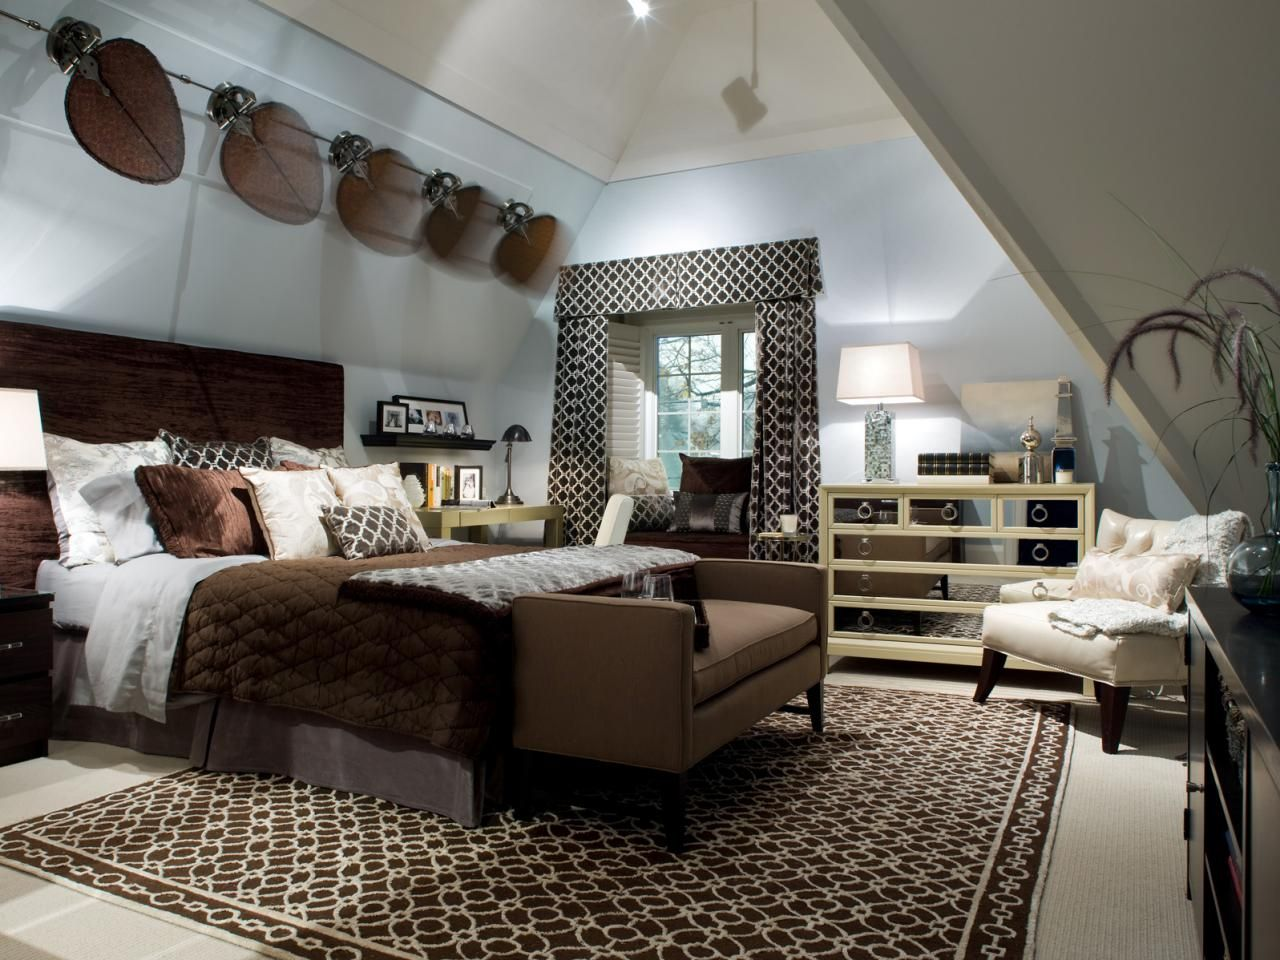 Candice Olson Bedroom Designs Custom 10 Bedroom Retreats From Candice Olson  Candice Olson Bedroom Design Inspiration